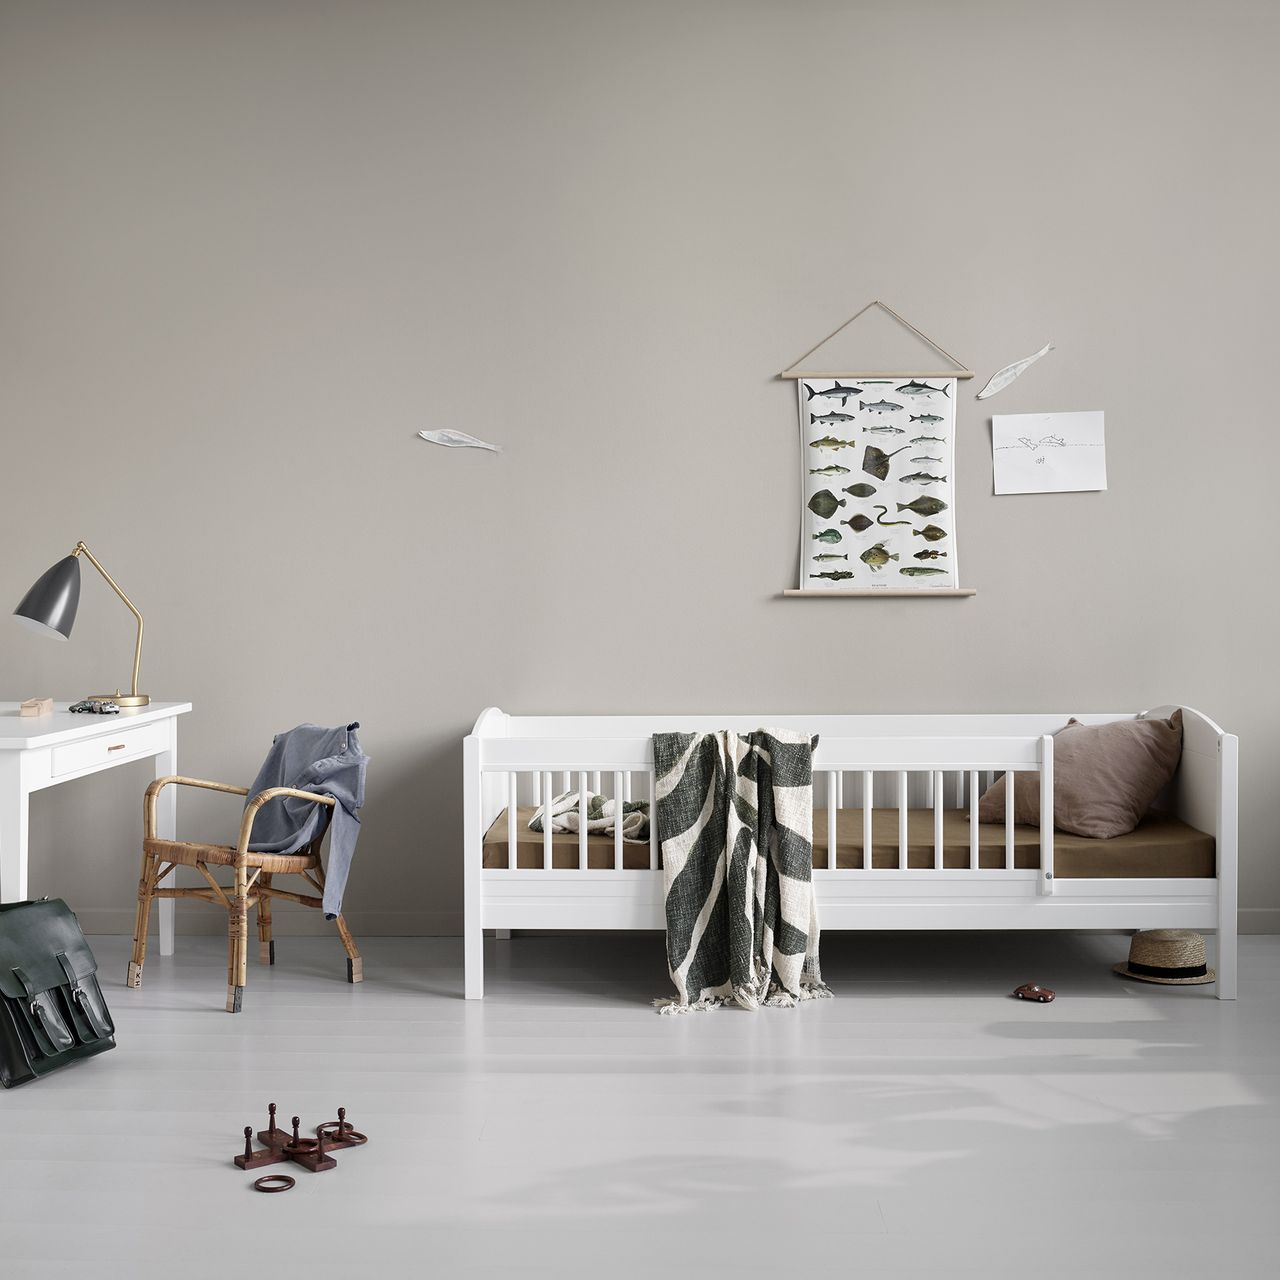 Seaside Lille+ Juniorbett von Oliver Furniture in Berlin kaufen - Kleine Fabriek